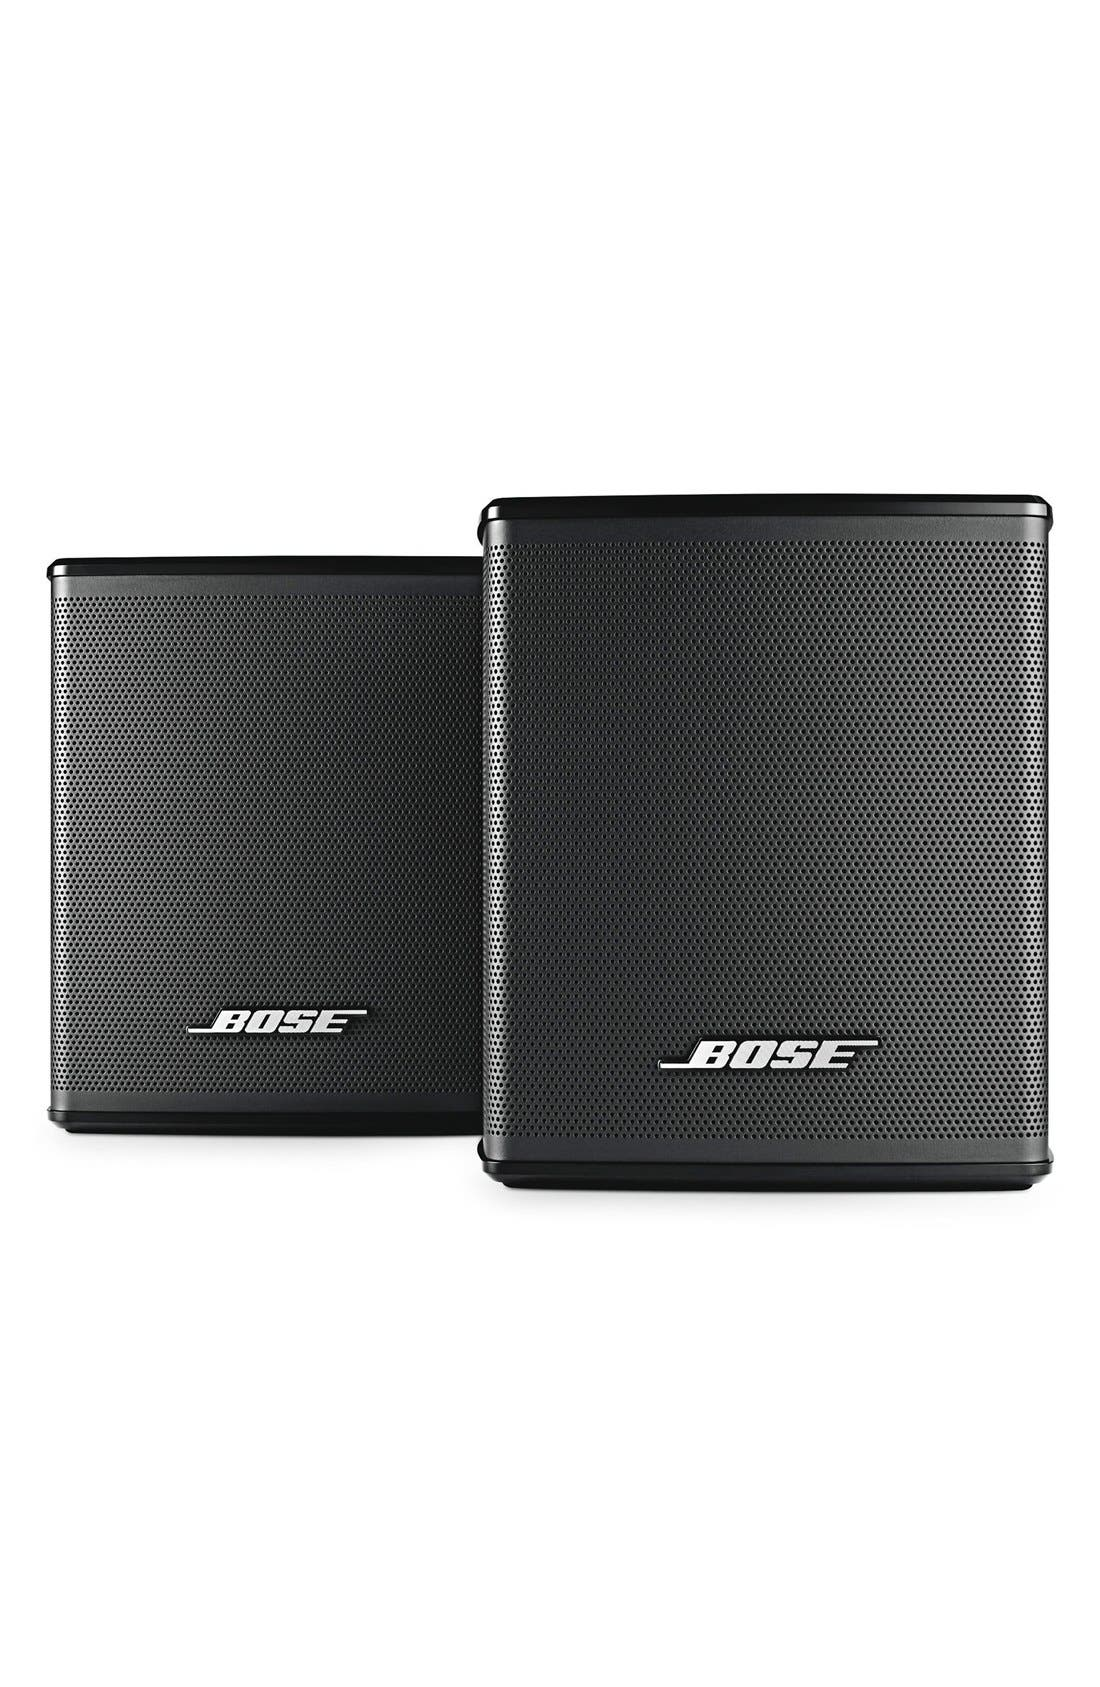 Bose® SoundTouch® 300 Set of 2 Surround Sound Speakers